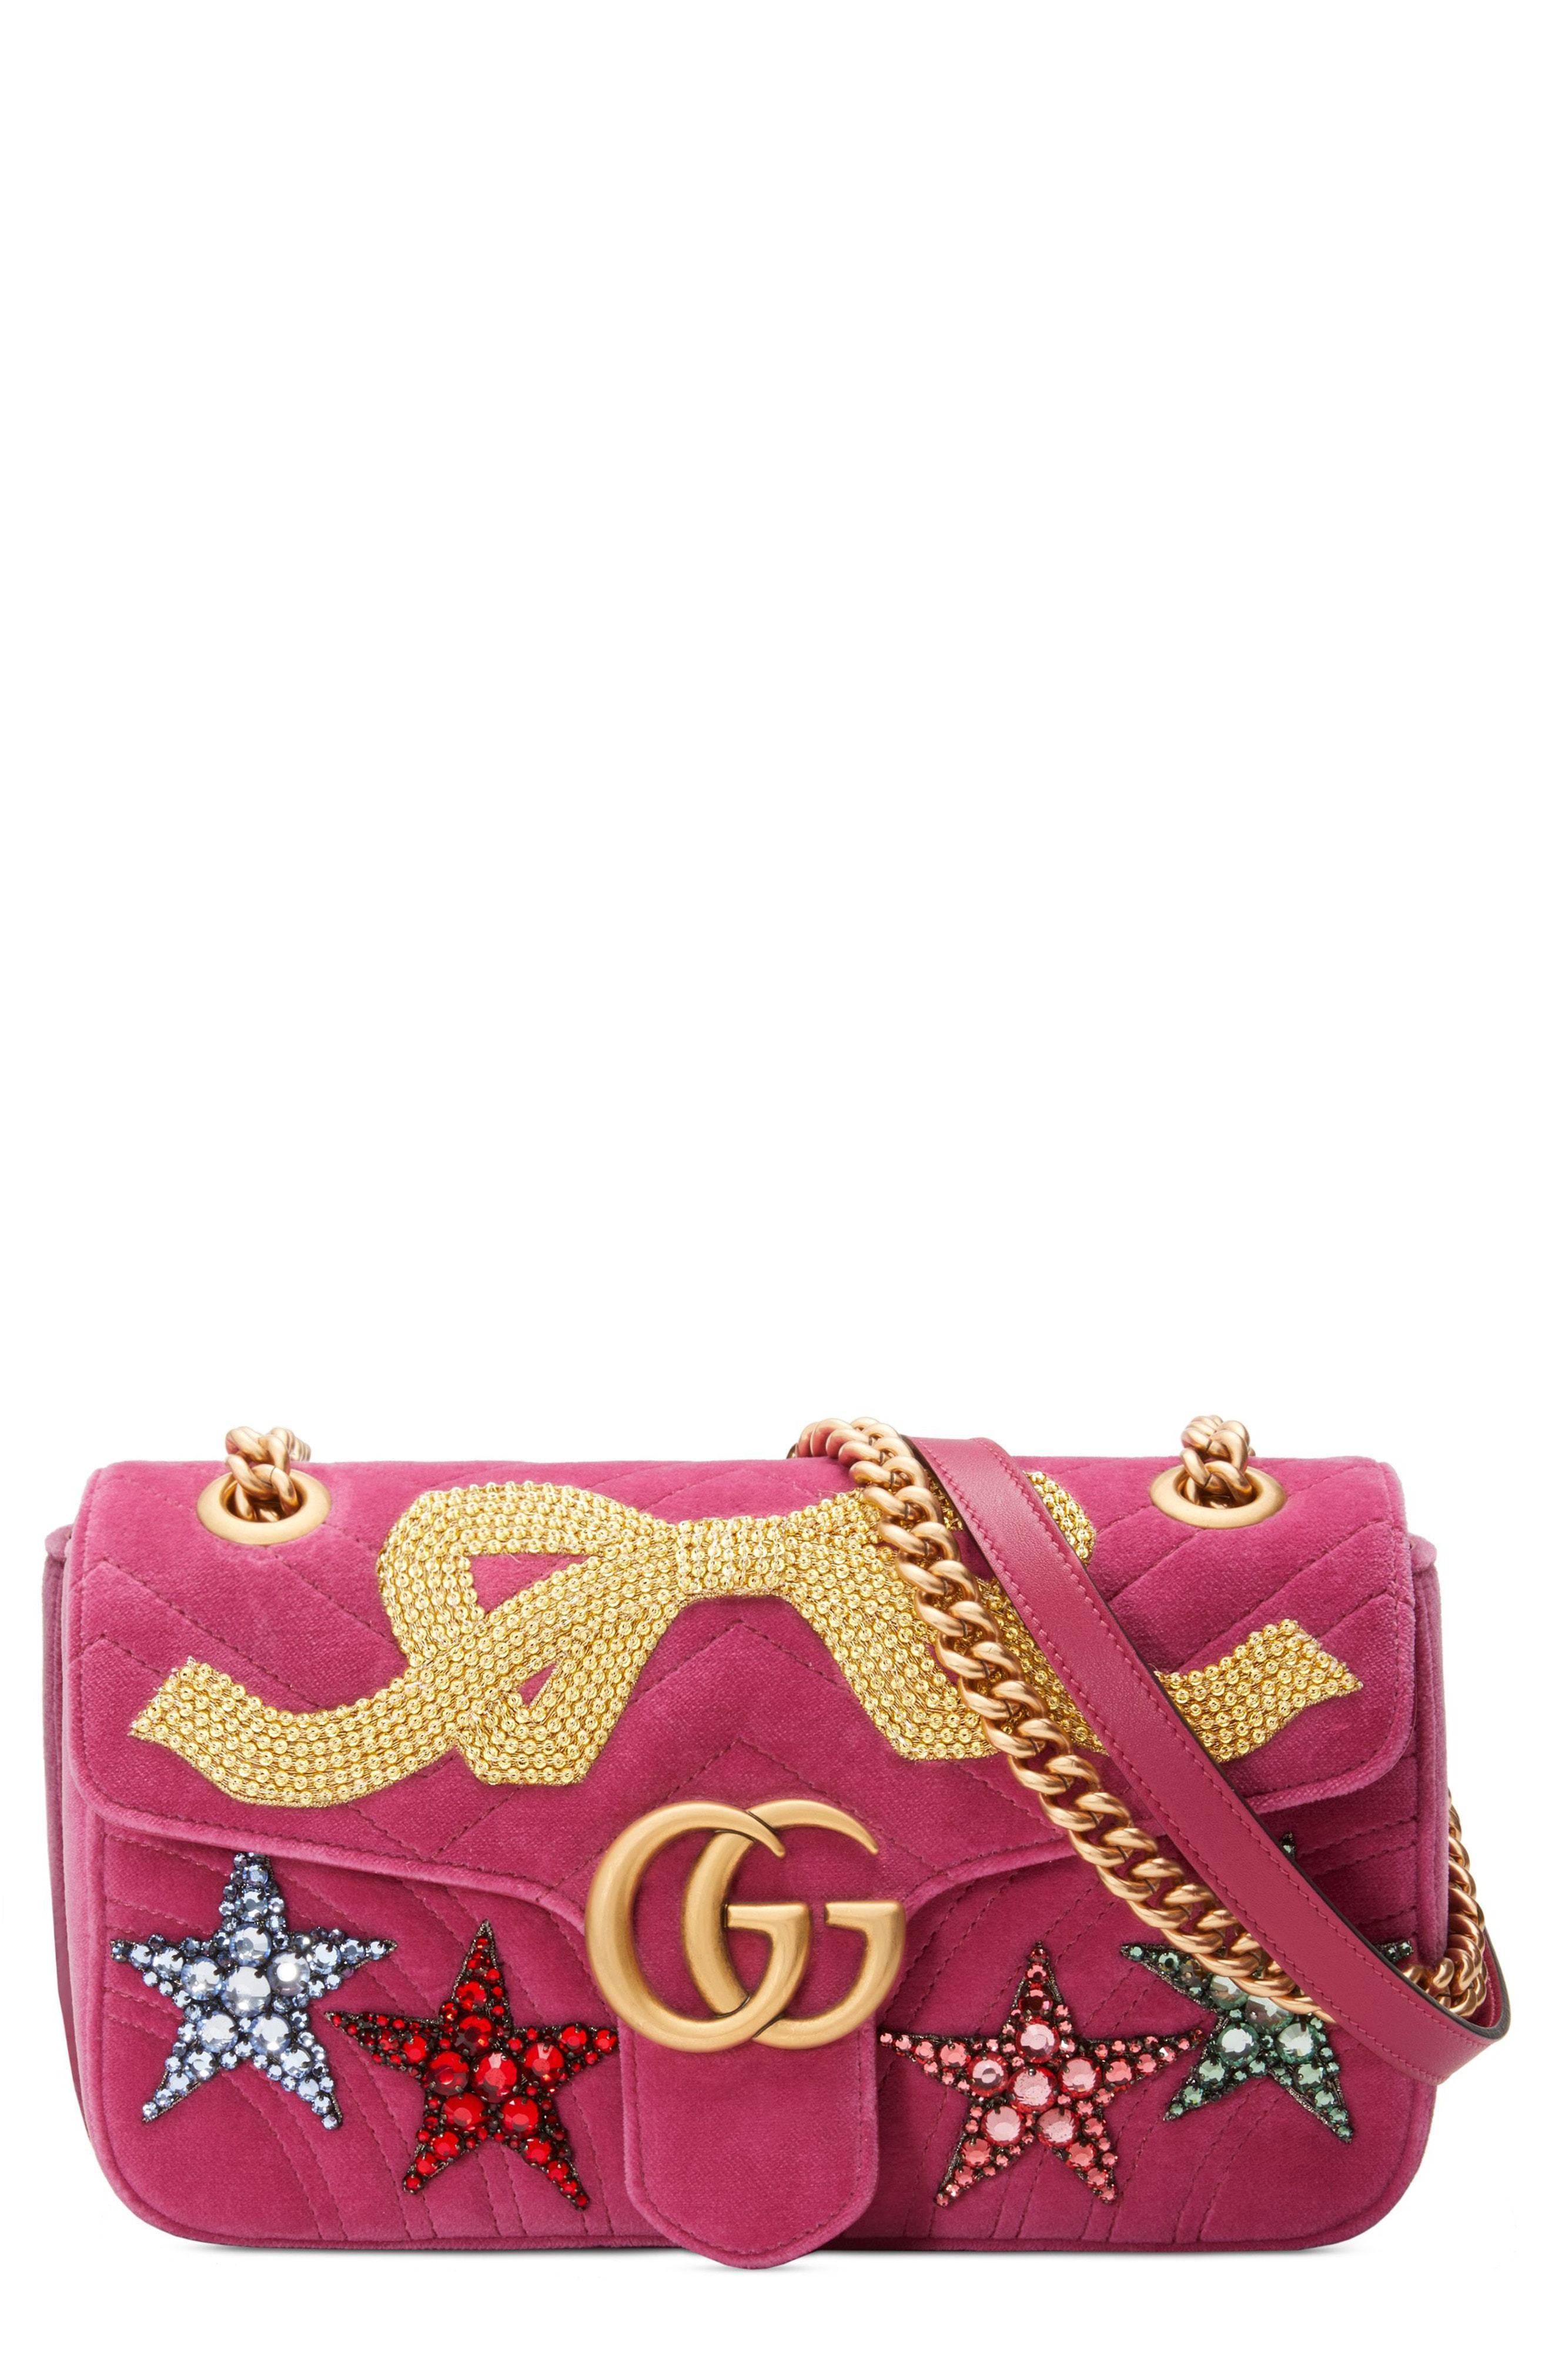 50040a7f370 Small Gg Marmont 20 Matelasse Velvet Shoulder Bag. Hot Pink Suede Crossbody Bag  by Gucci